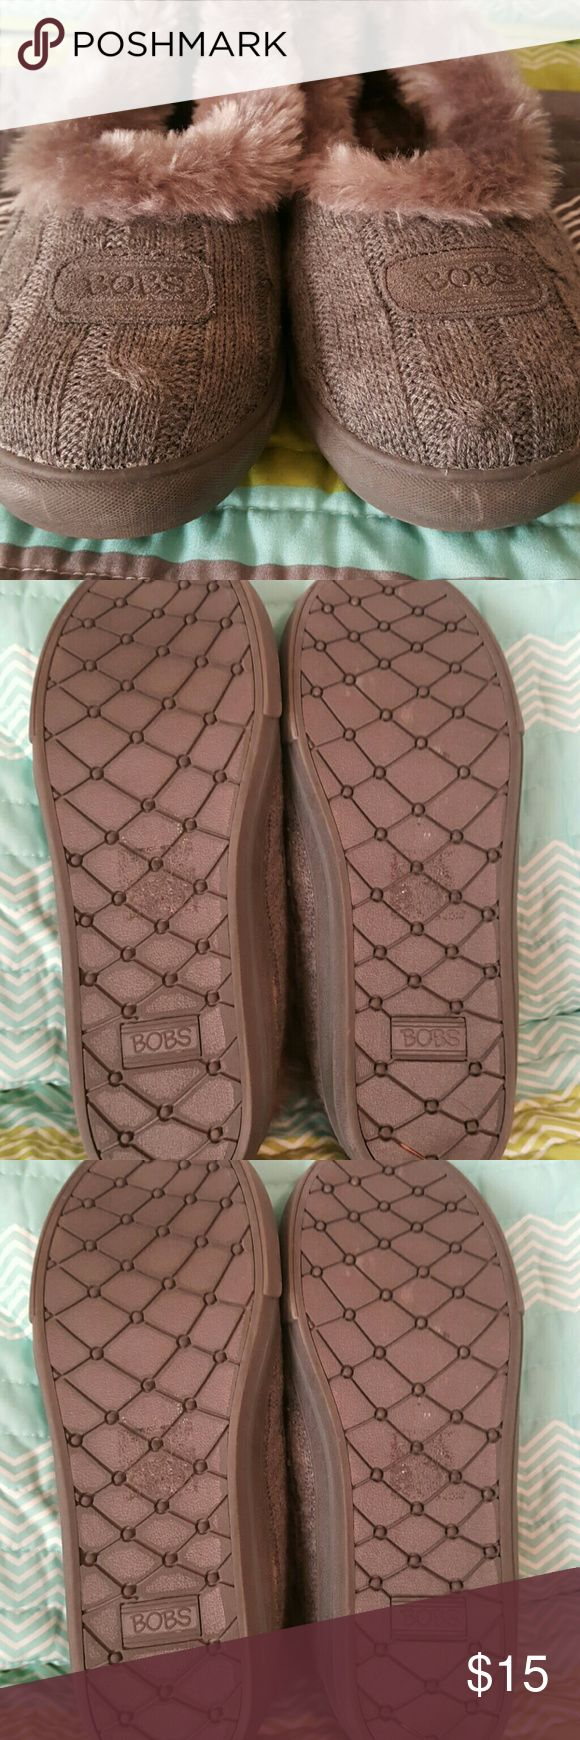 Sketchers Bobs Slippers Super comfortable...Sketchets Bobs Slippers with warm soft lining and memory foam.  Has a non slid sole, so they can be worn outdoors if needed.  Worn once, but a bit too small. sketchers Shoes Slippers